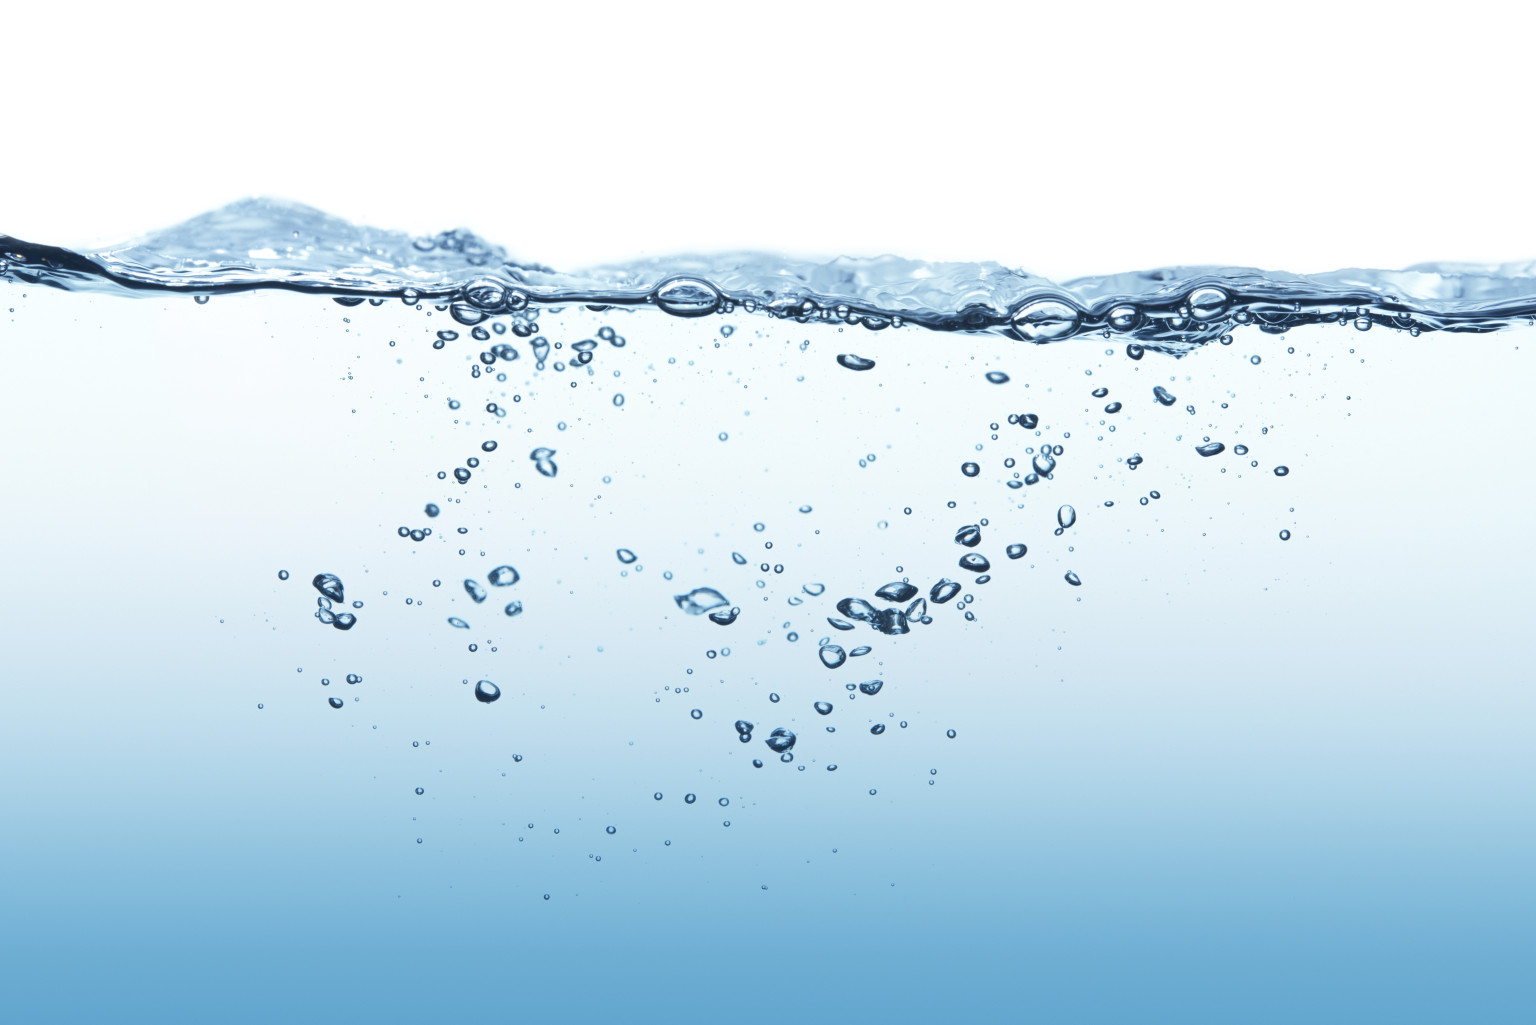 We live on a mostly blue planet that is 71% water and weighs approximately 13,500,000,000,000,000,000,000,000,000 lbs. yet floats freely in space.